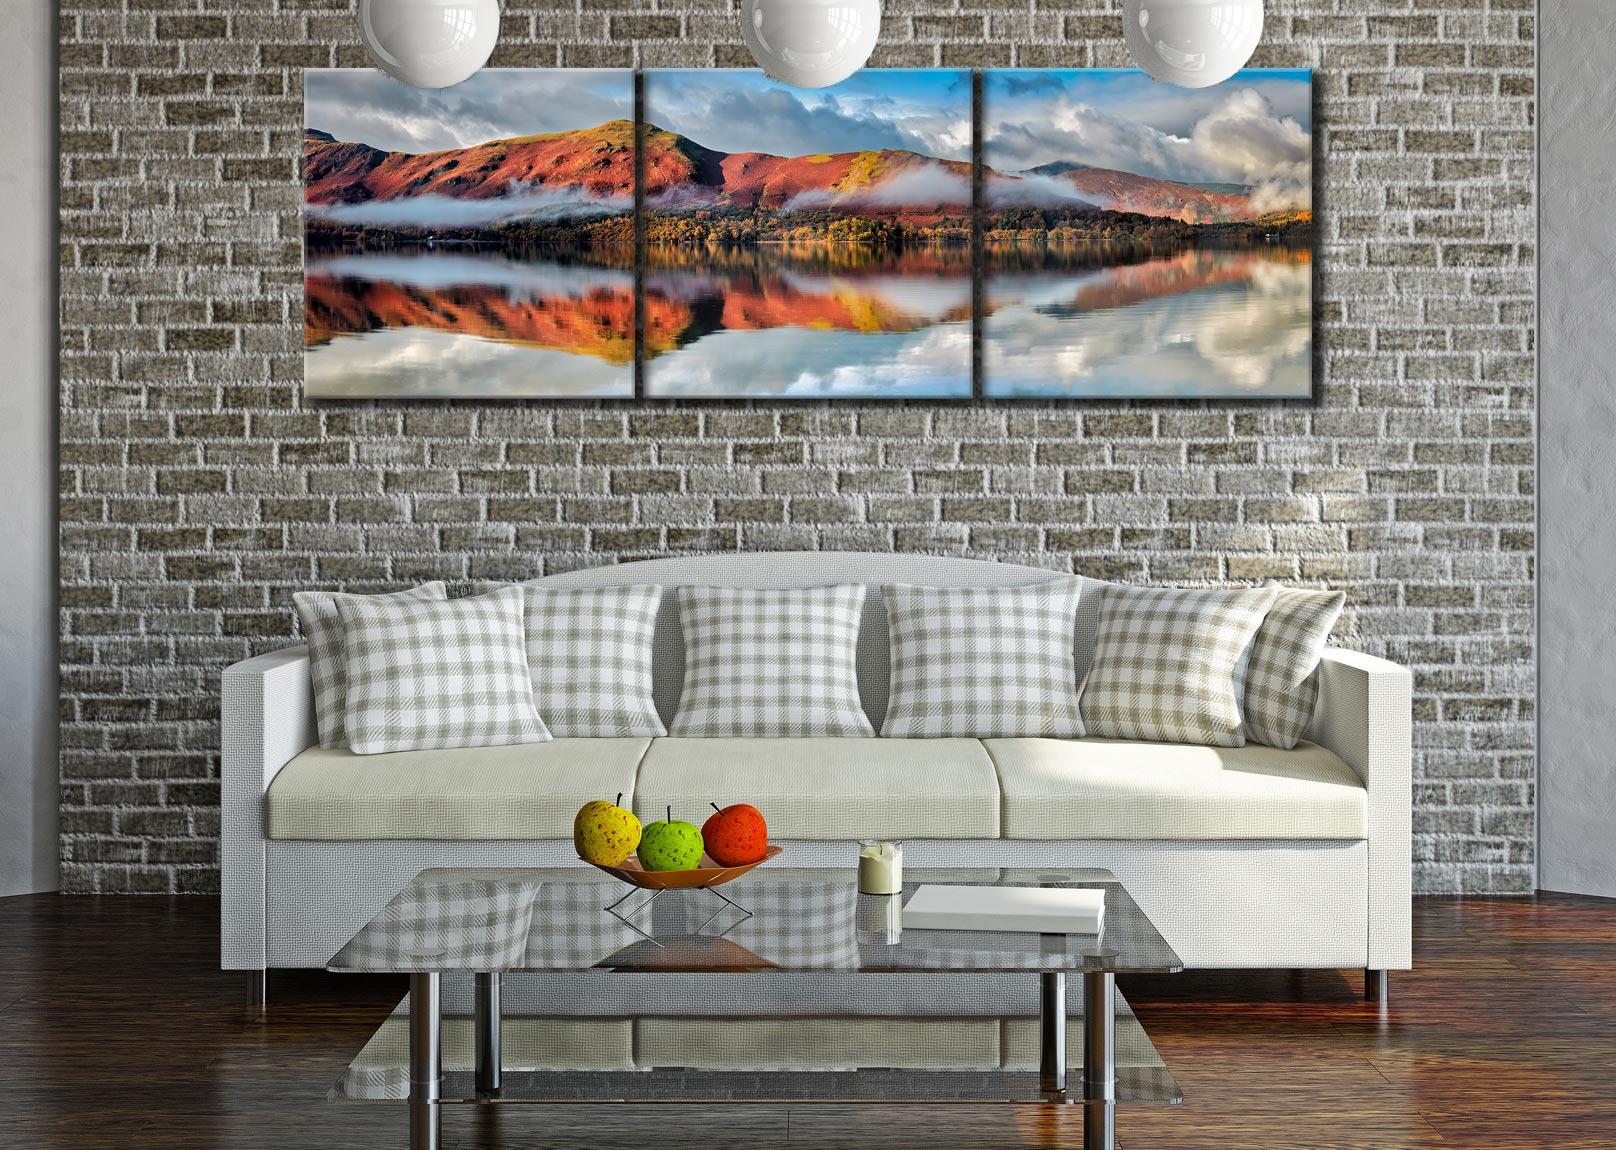 Cat Bells Autumn Mists - 3 Panel Canvas on Wall